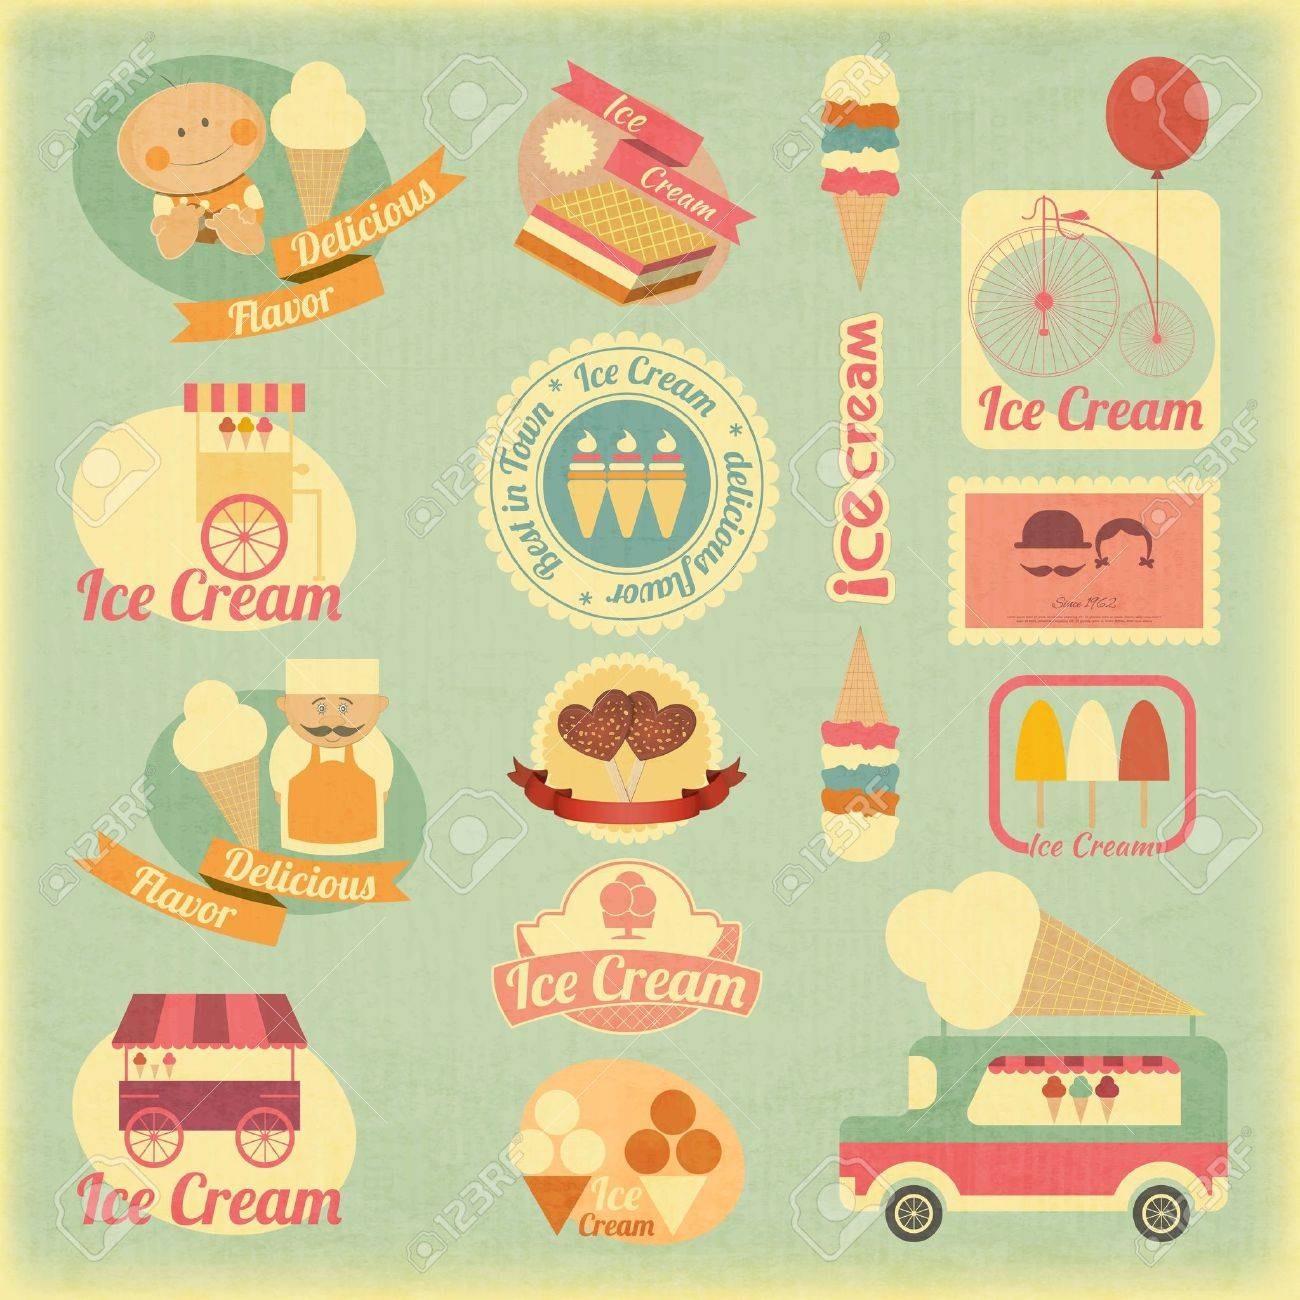 Ice Cream Dessert Vintage Labels in Retro Style - Set of Ice Cream Design Elements. Stock Vector - 21159185